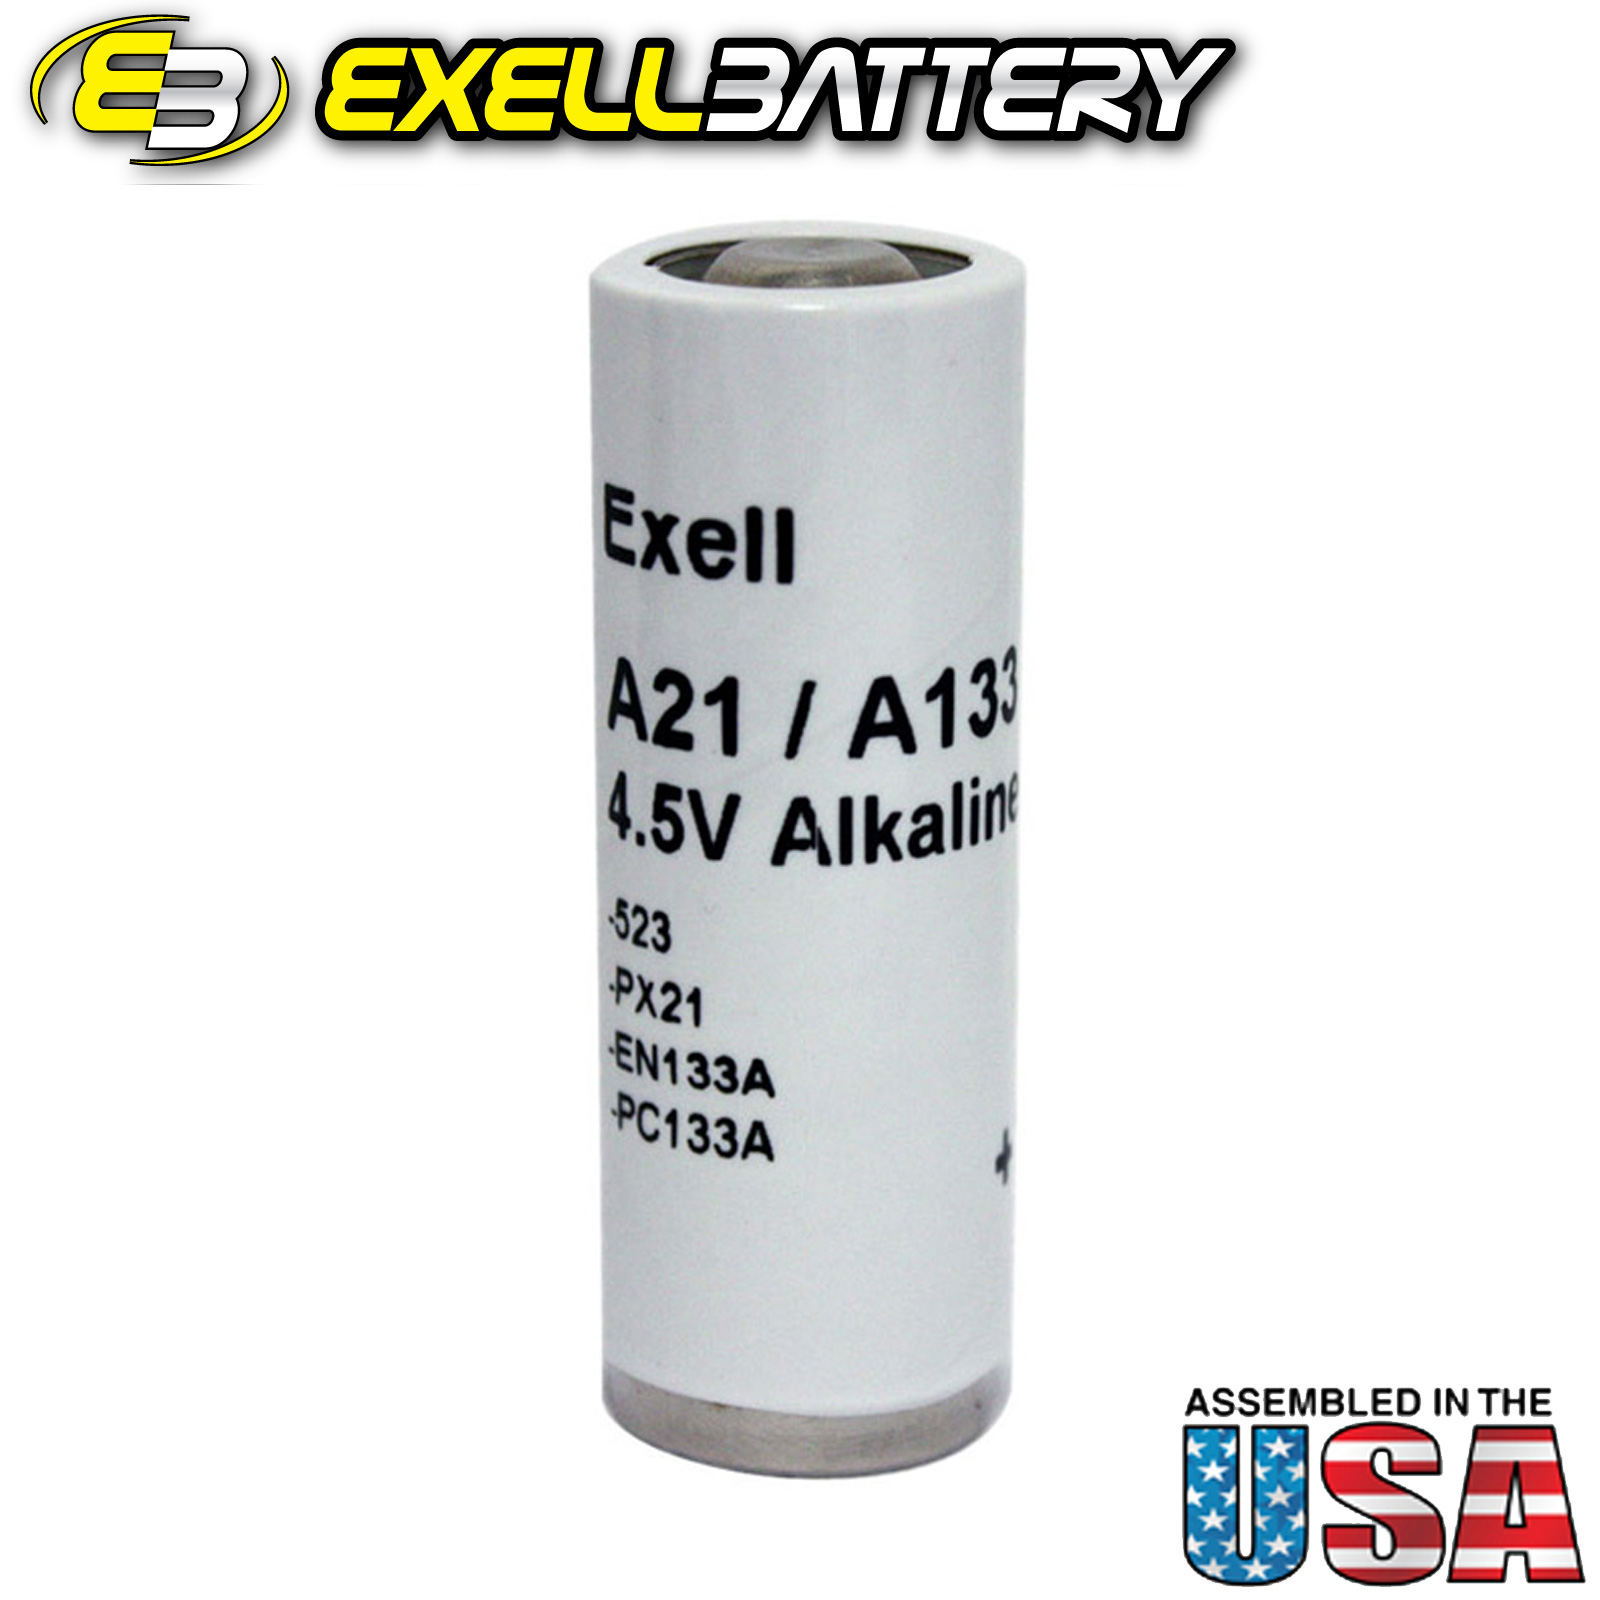 Exell battery a21px battery fits praktica ee2 ee3 llc plc2 plc3 vlc exell battery a21px battery fits praktica ee2 ee3 llc plc2 plc3 vlc fandeluxe Choice Image